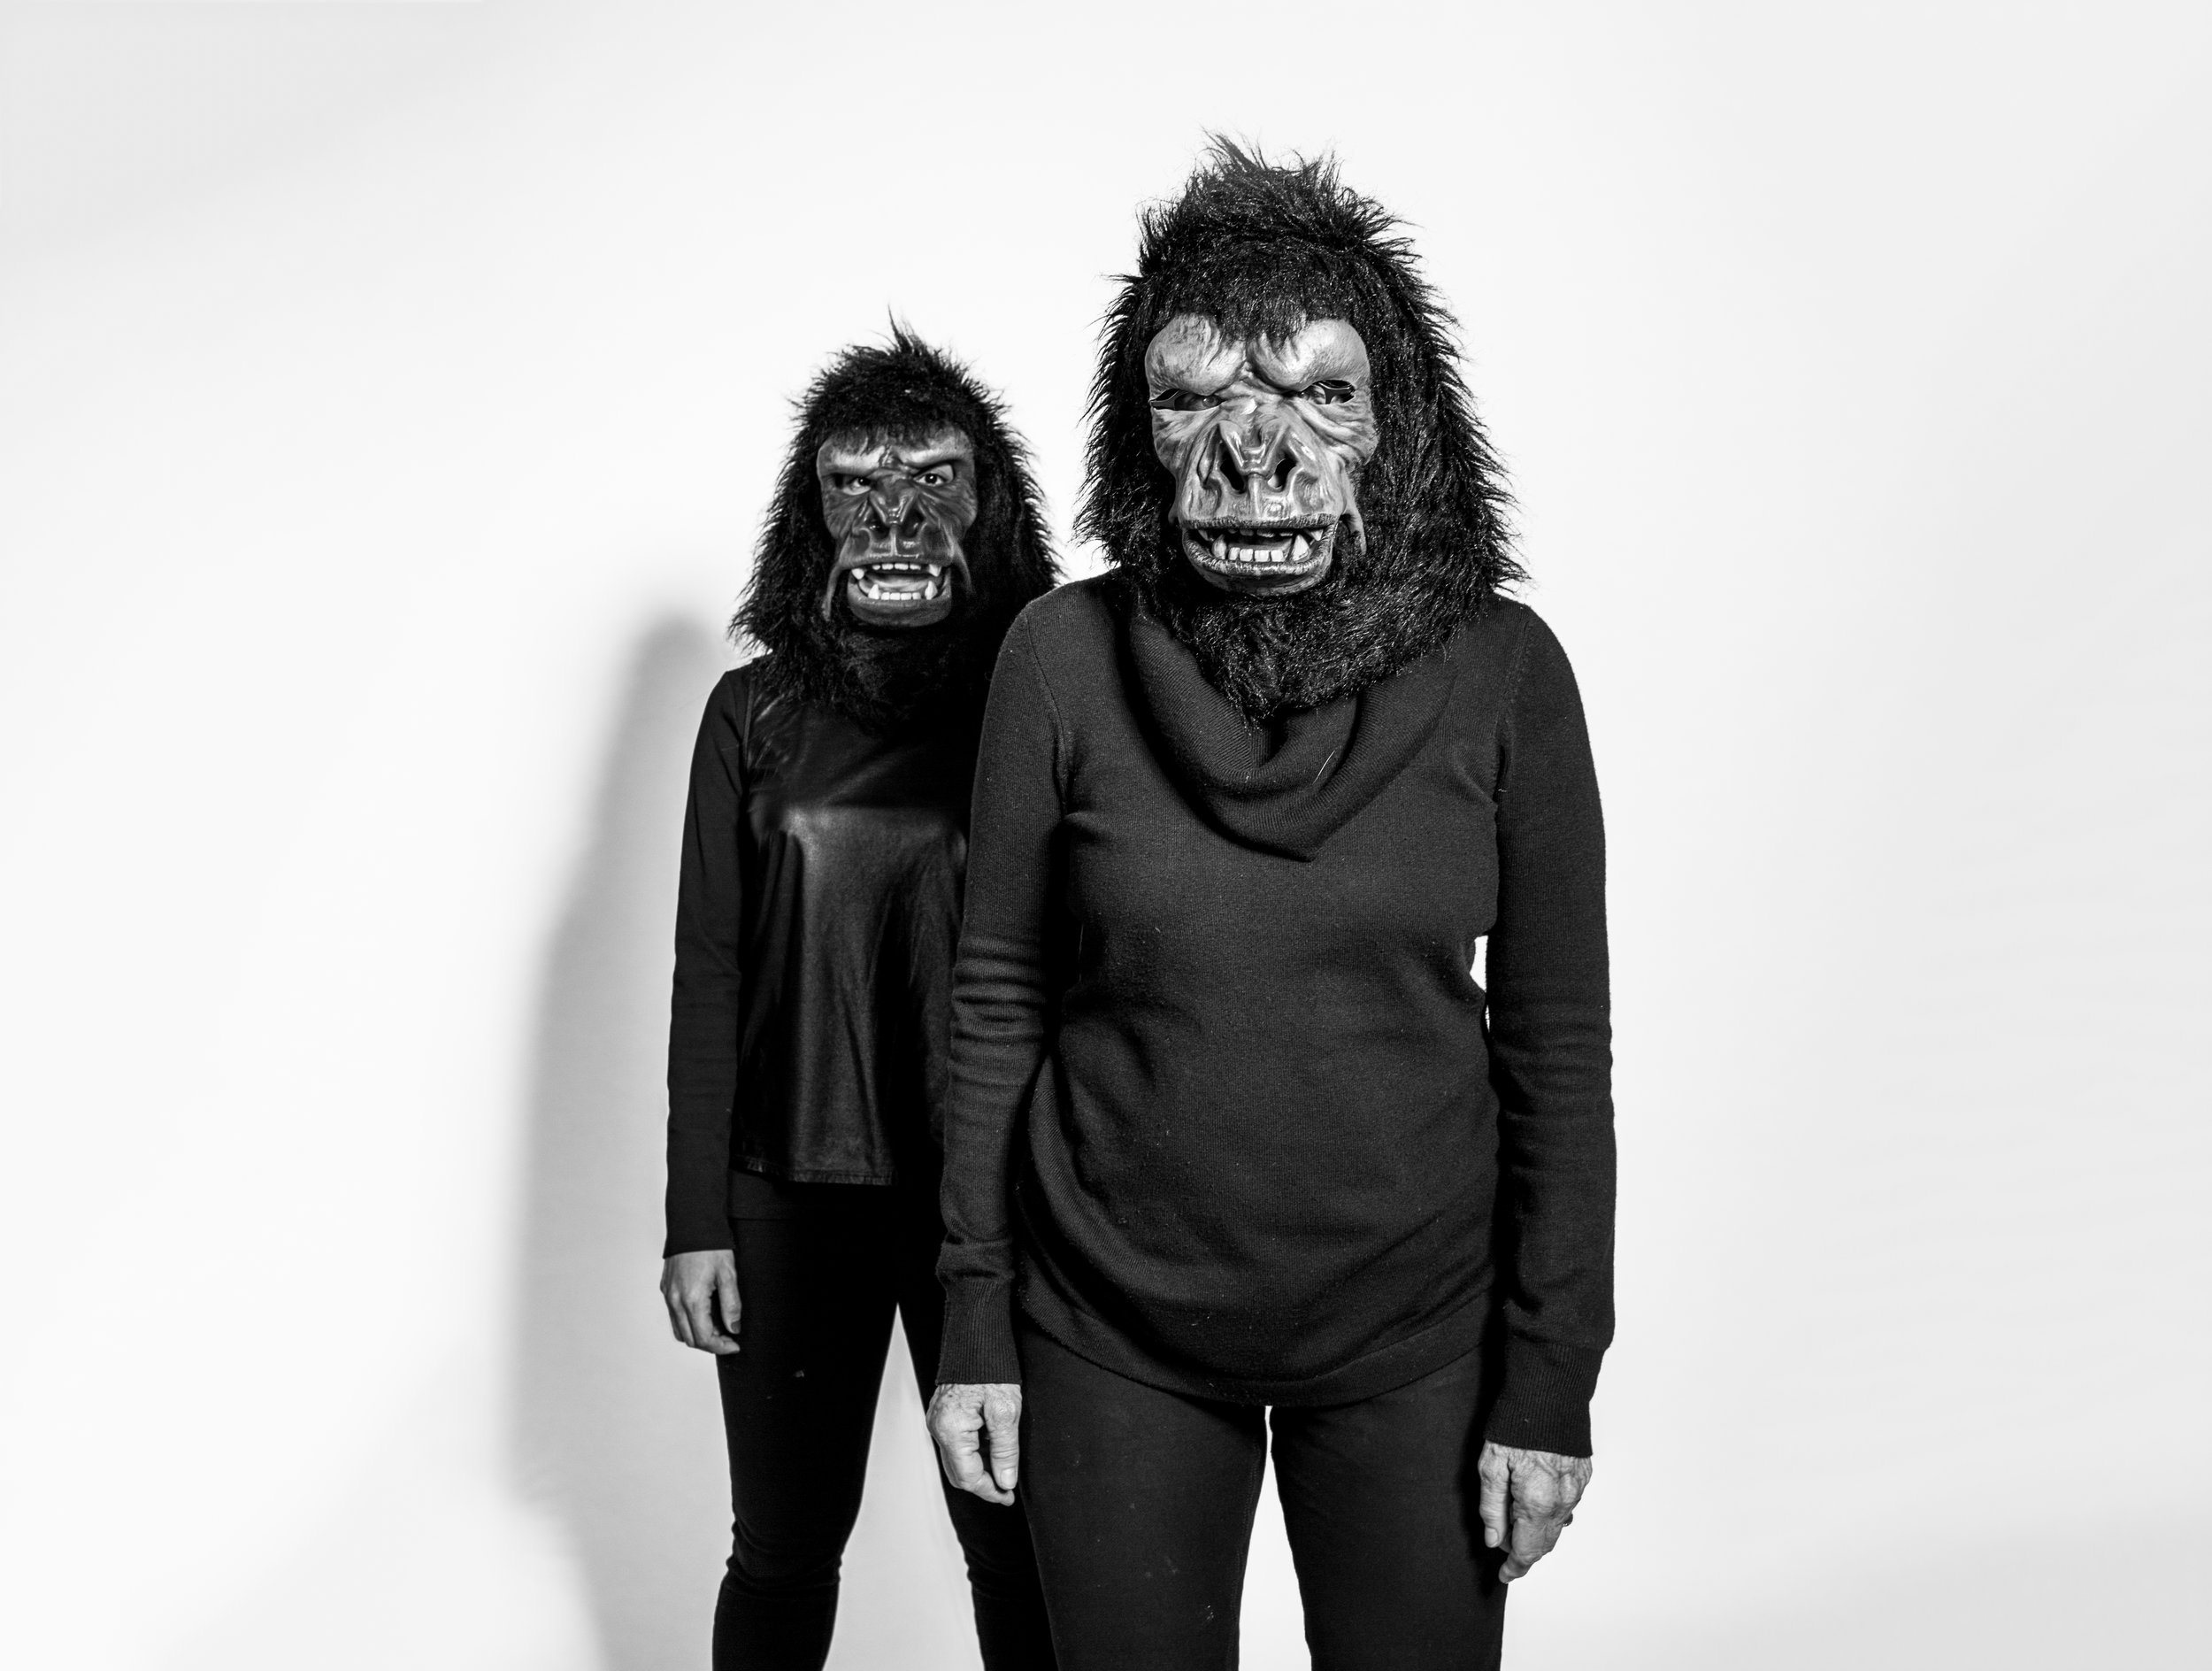 The Guerrilla Girls, artists